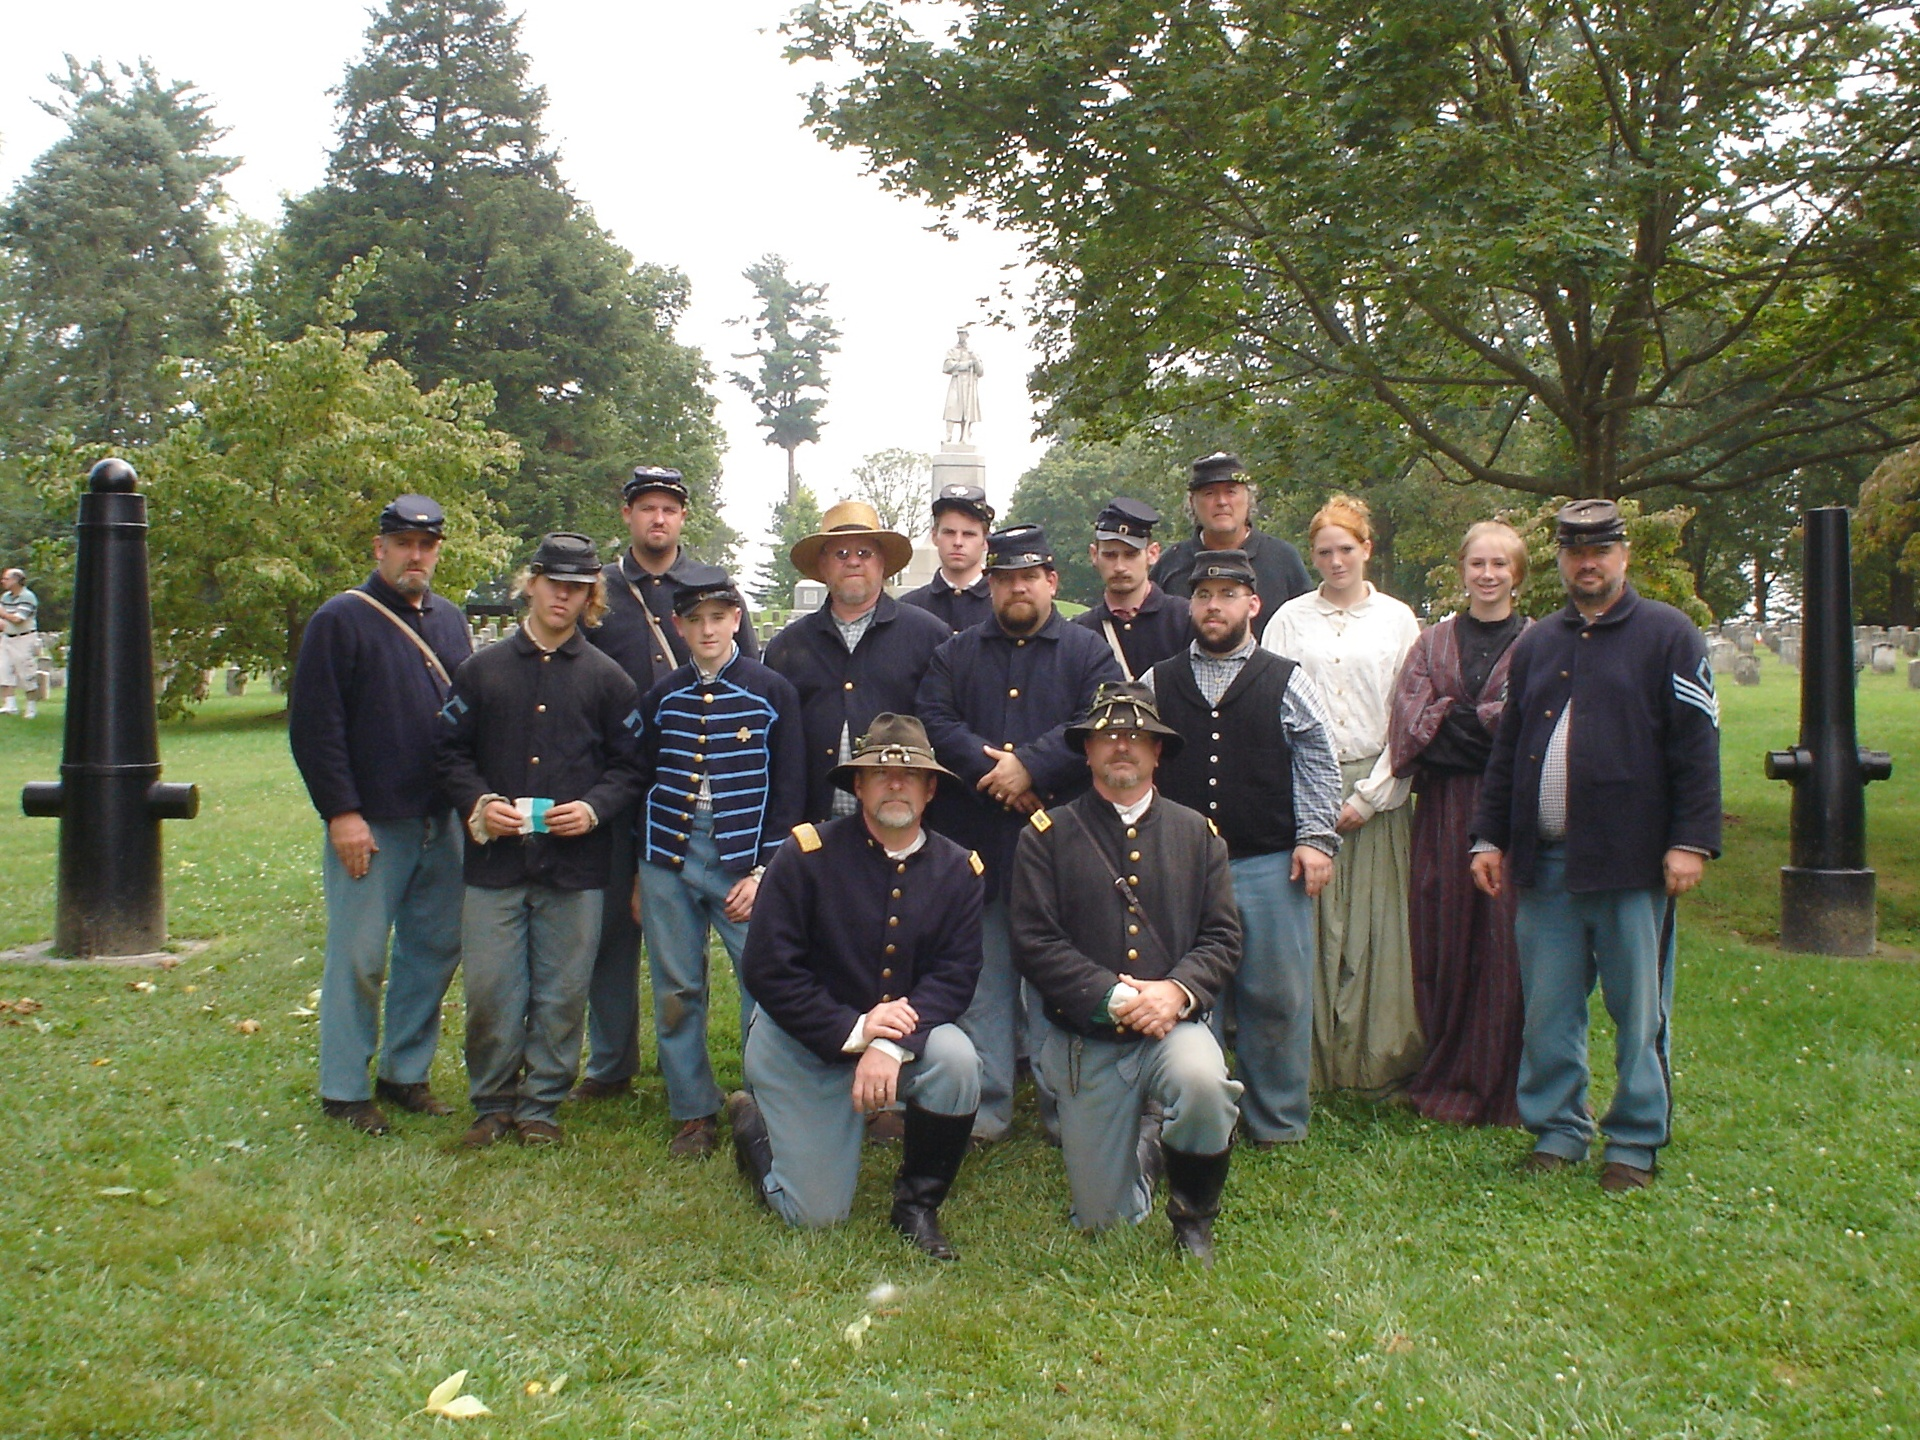 a visit to the Antietam Cemetery